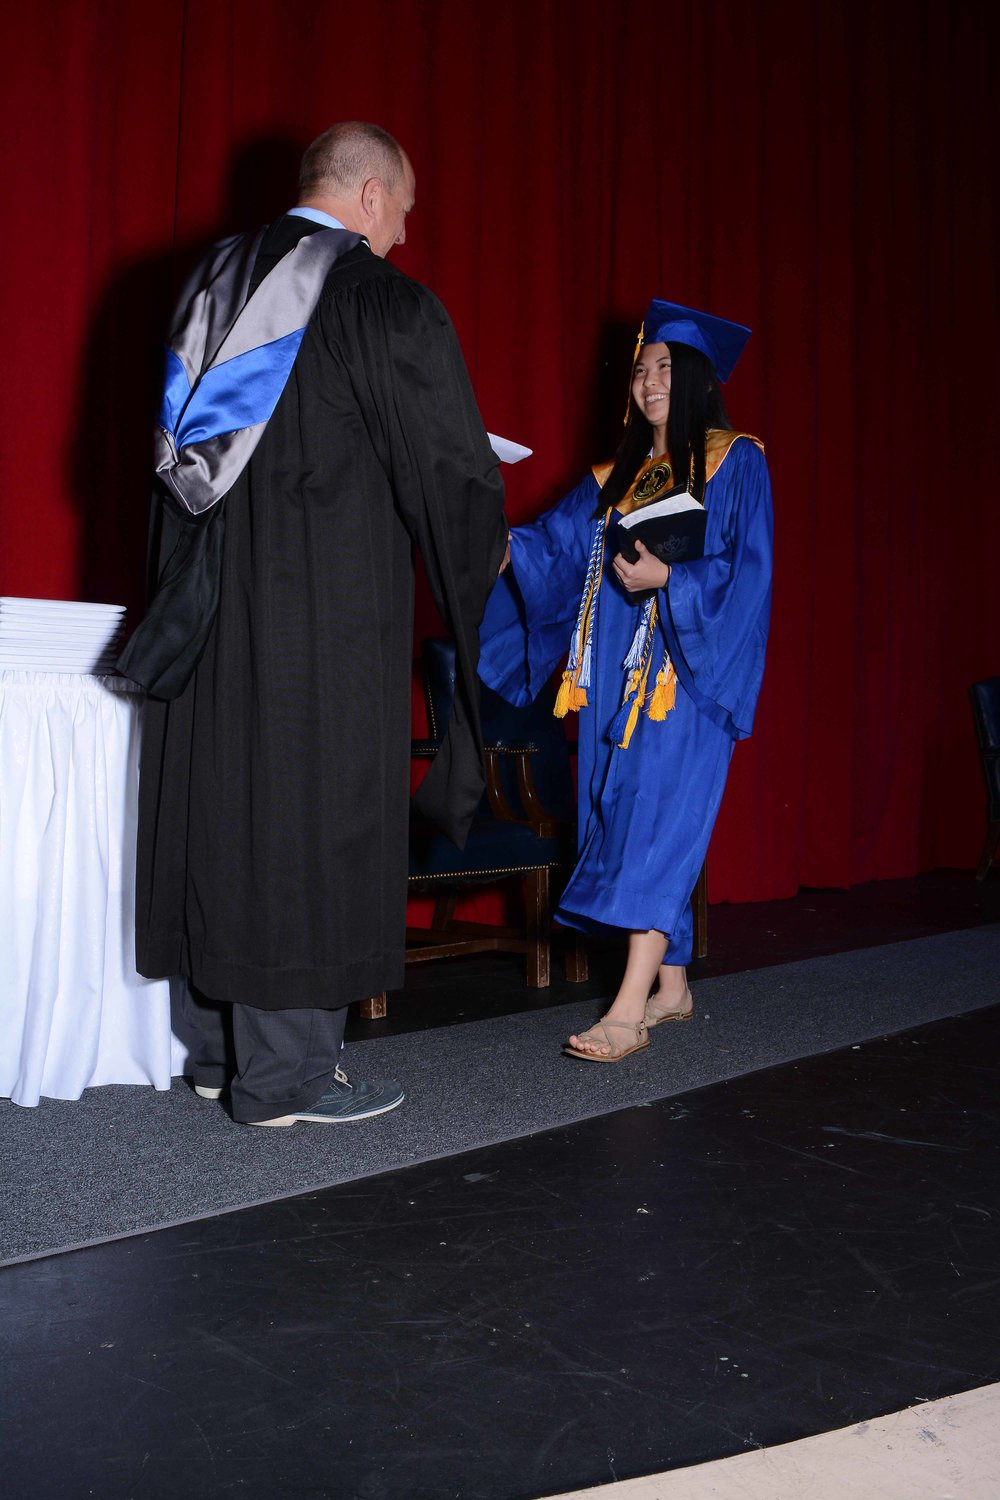 May14 Commencement100.jpg